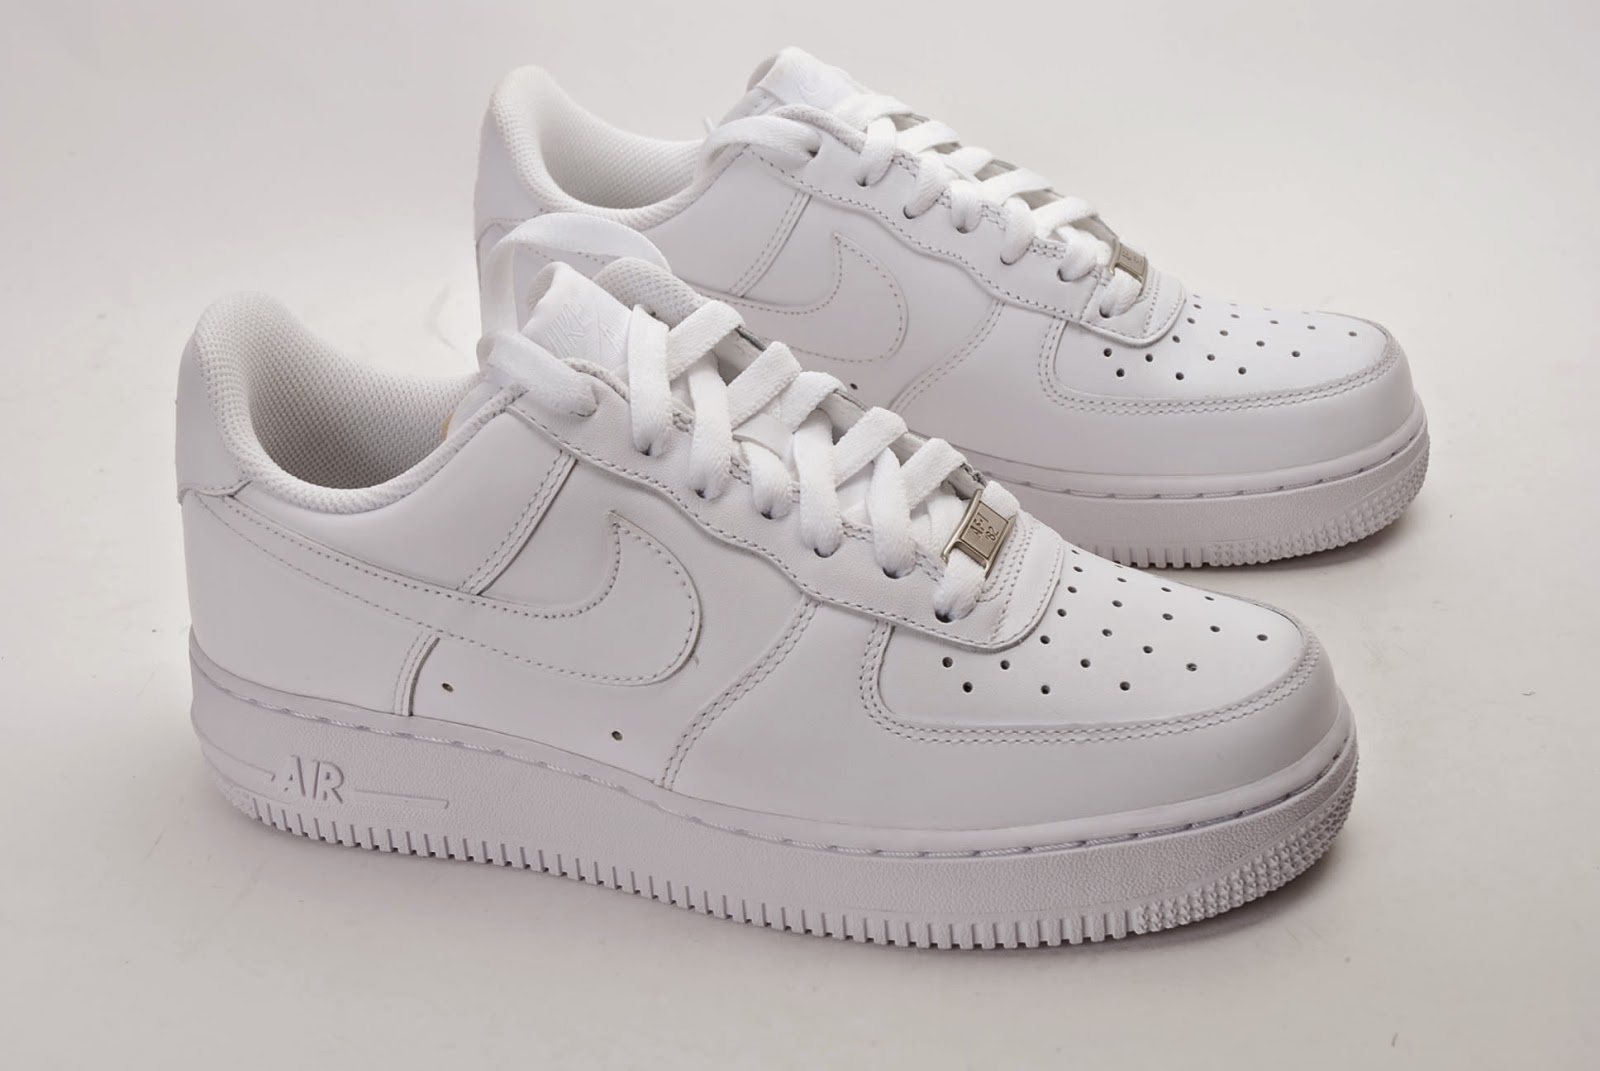 air force one basse blanche femme - www.sitiprofessionali.eu